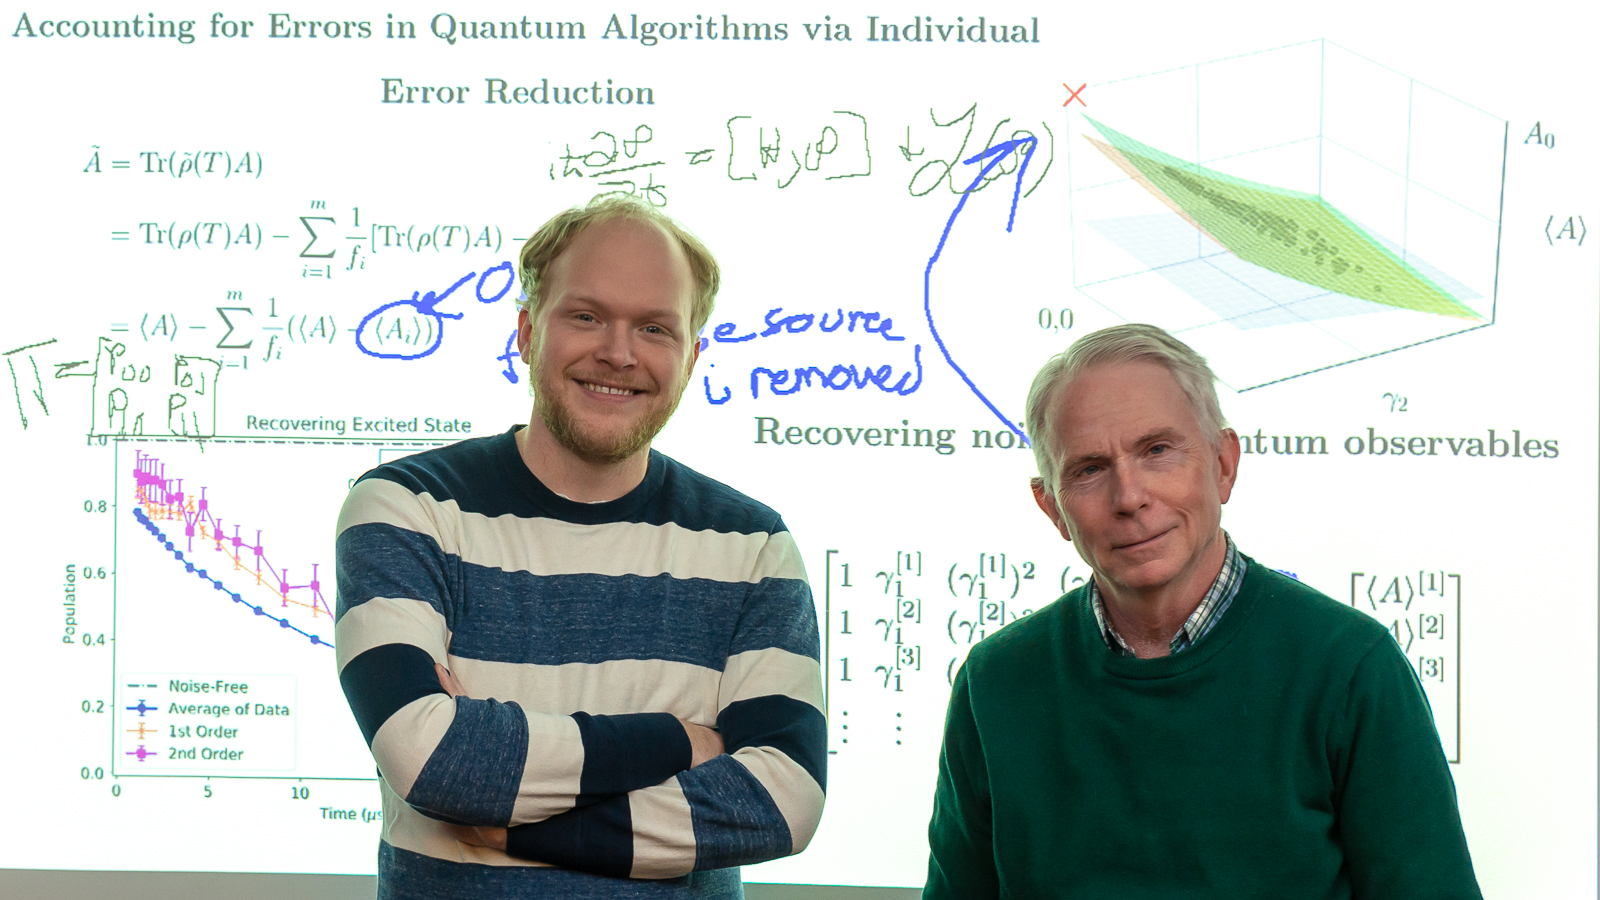 Matt Otten (left) and Stephen Gray (right) have developed a technique that effectively reduces quantum noise without the need for additional quantum hardware.